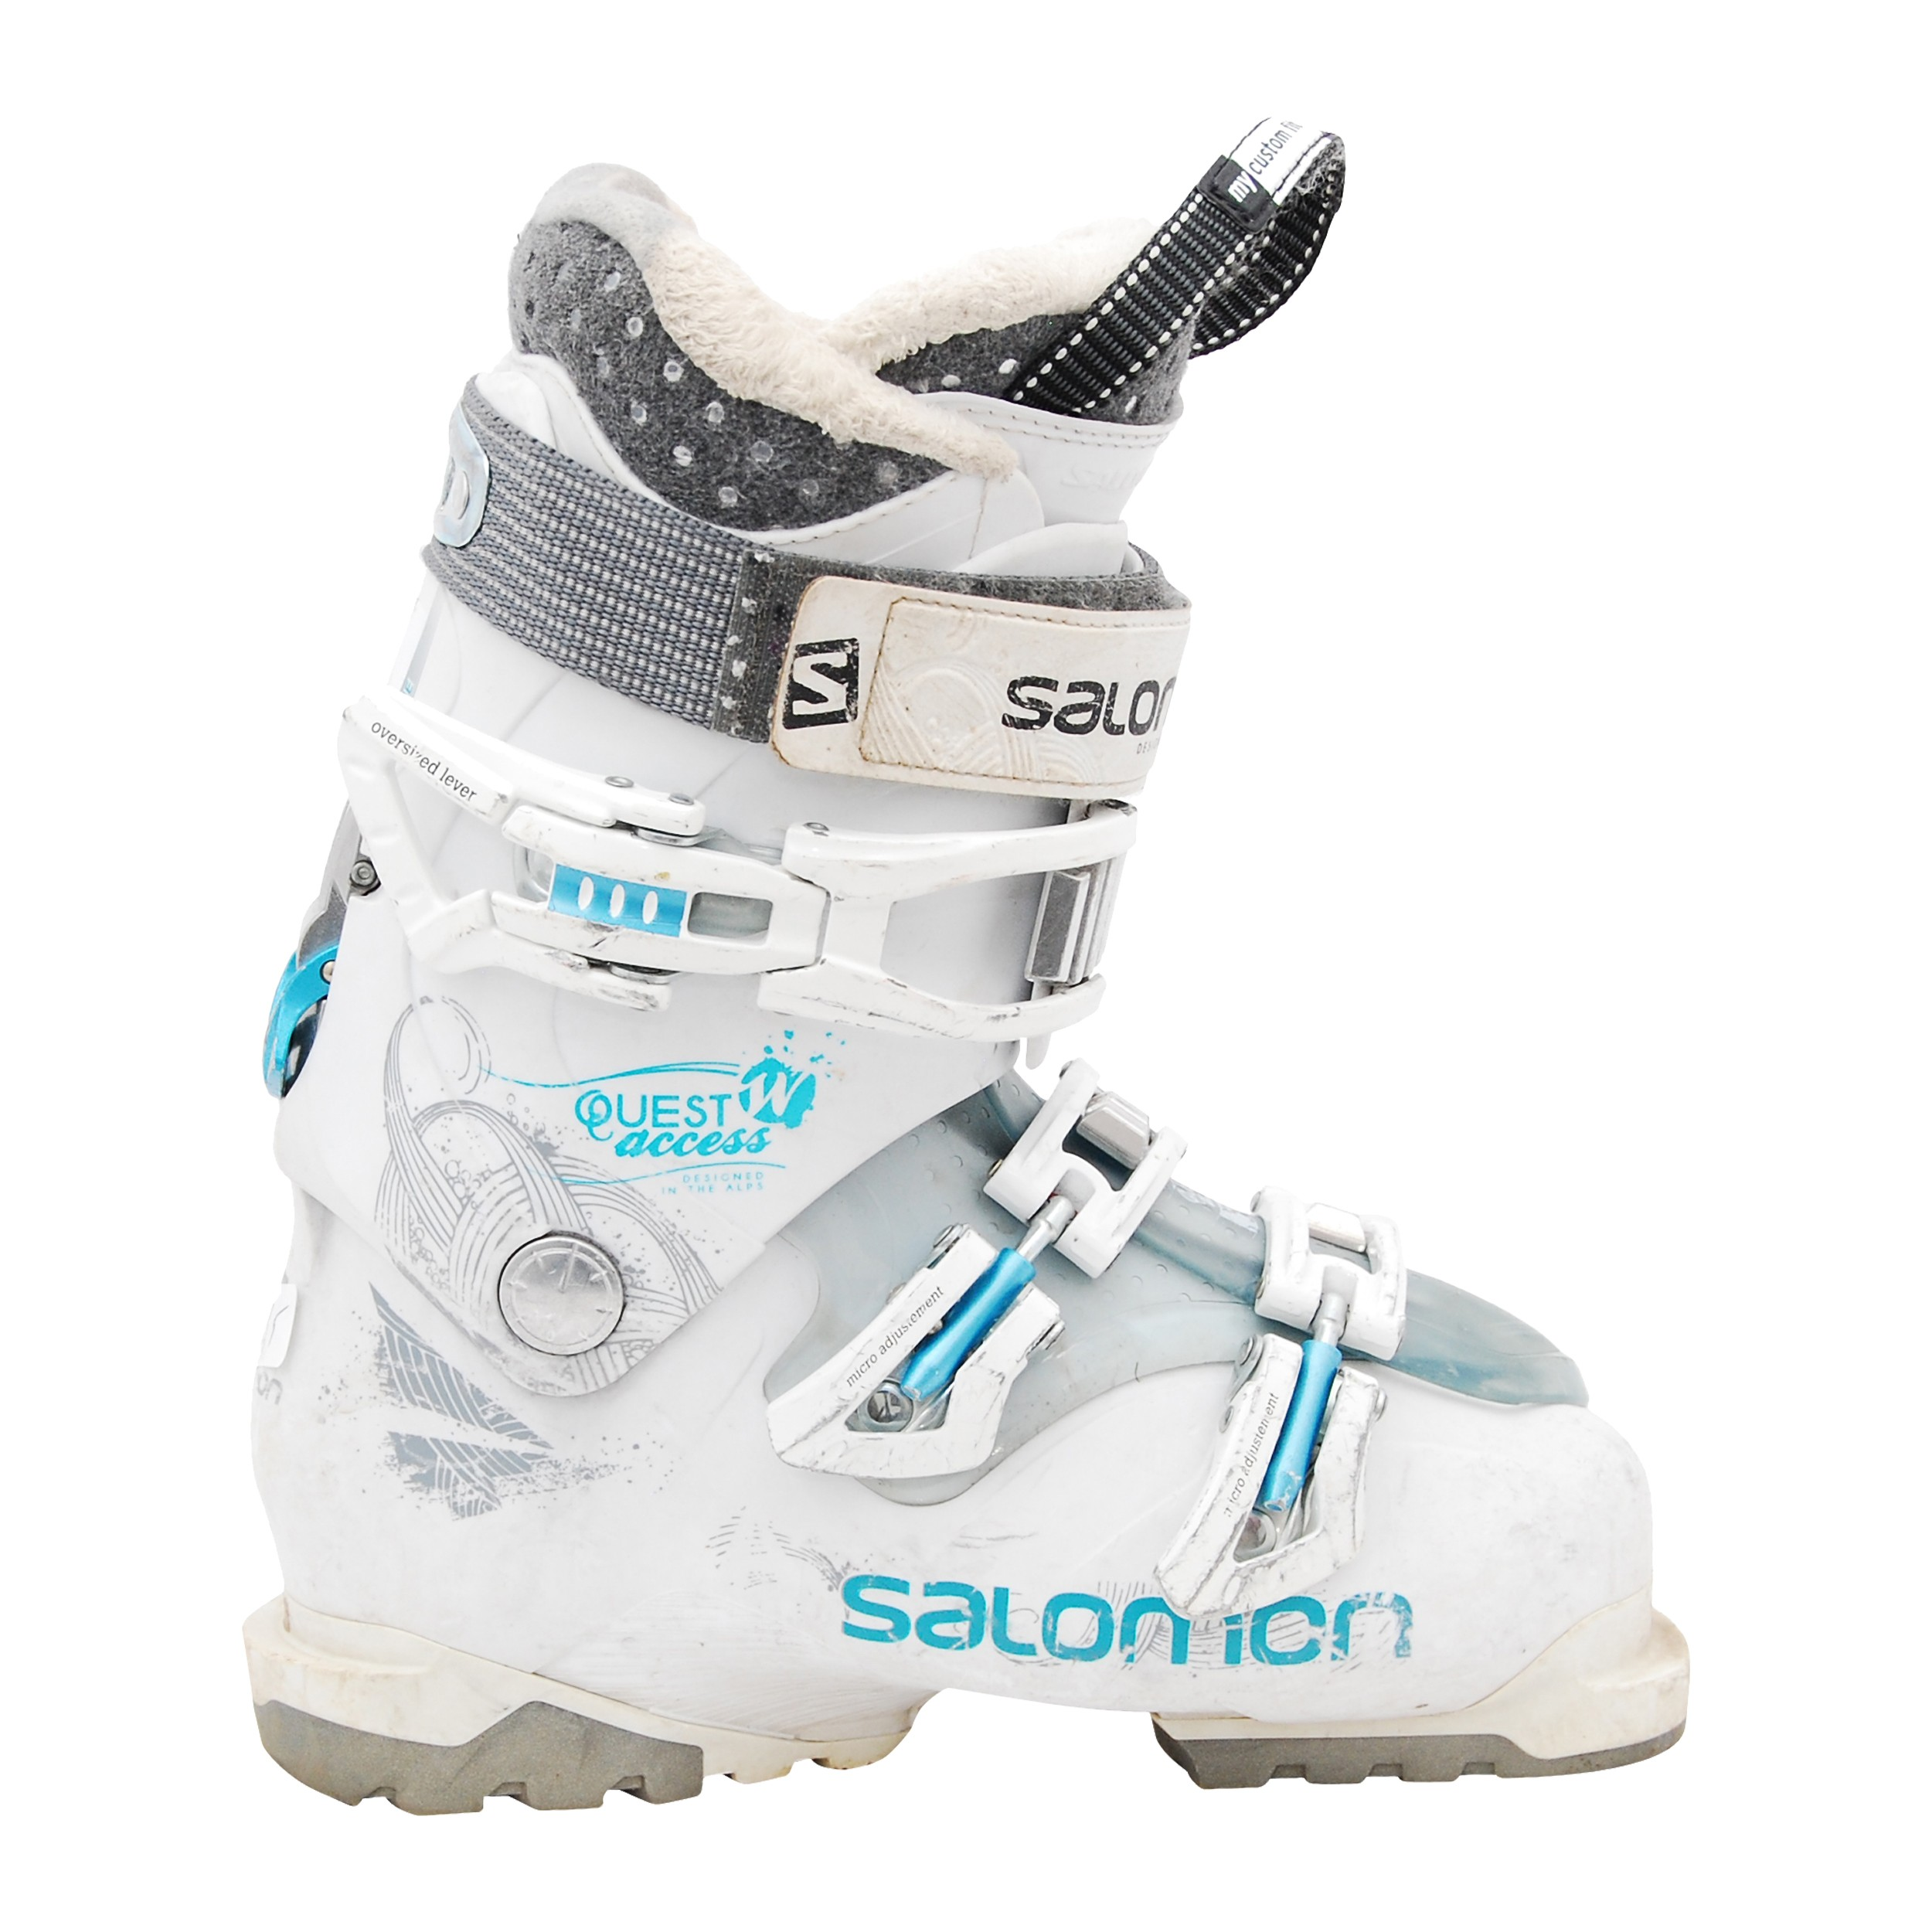 Ski boot Occasion Salomon quest access w 50 white